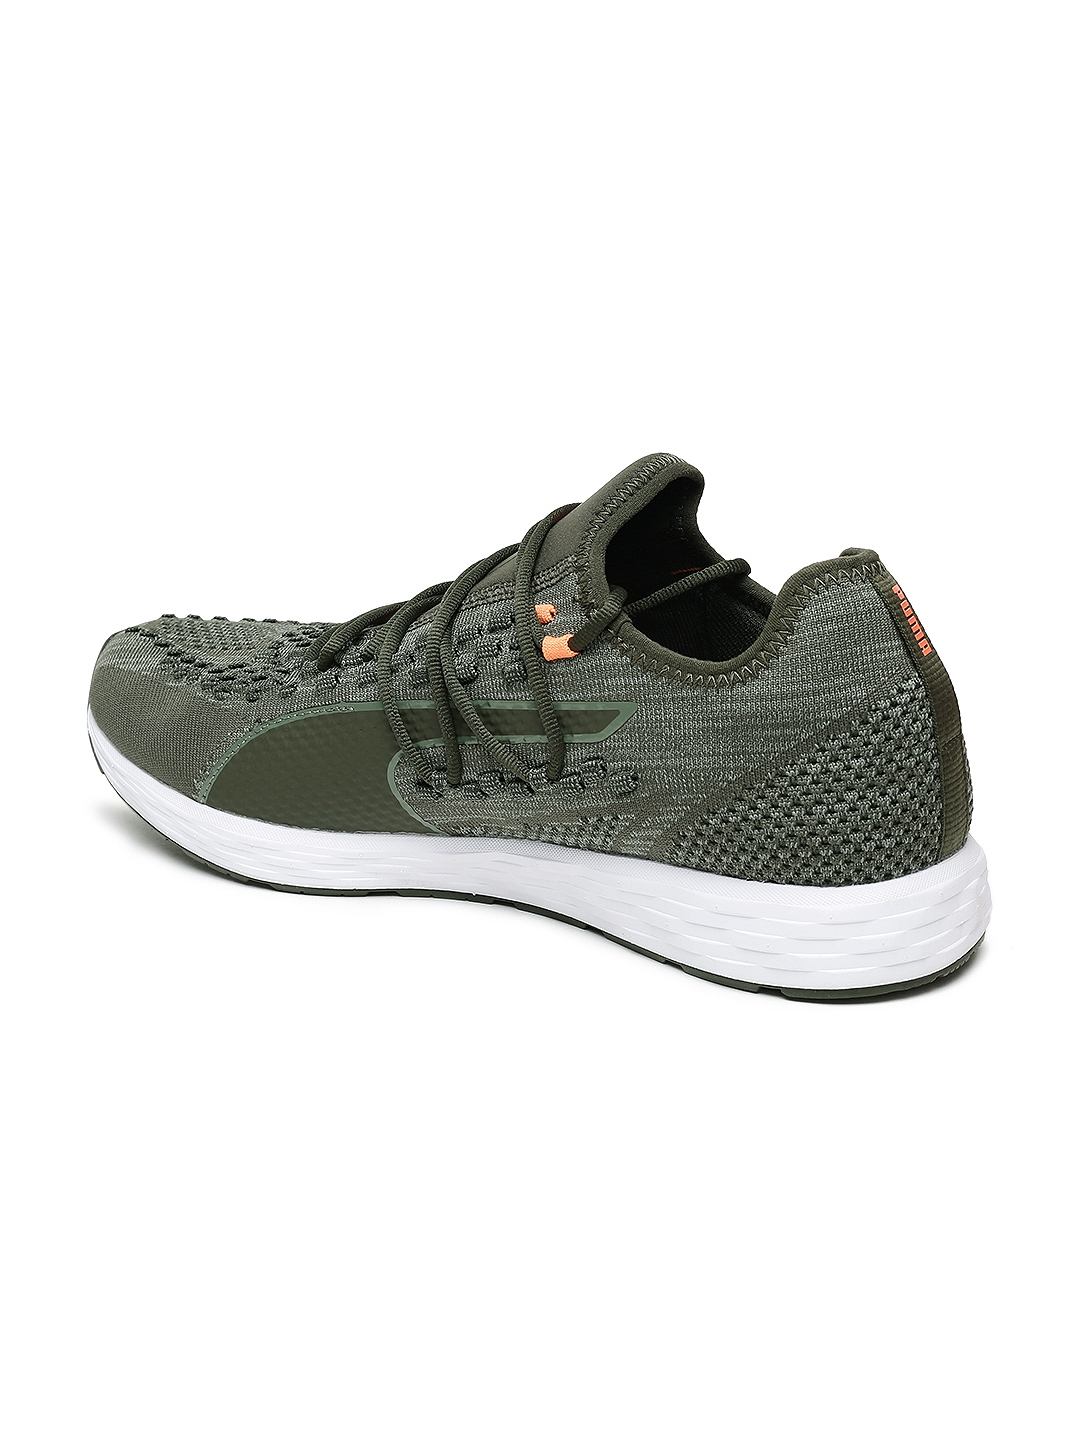 Buy Puma Men Olive Green SPEED RACER Running Shoes - Sports Shoes ... f4c4d8c82